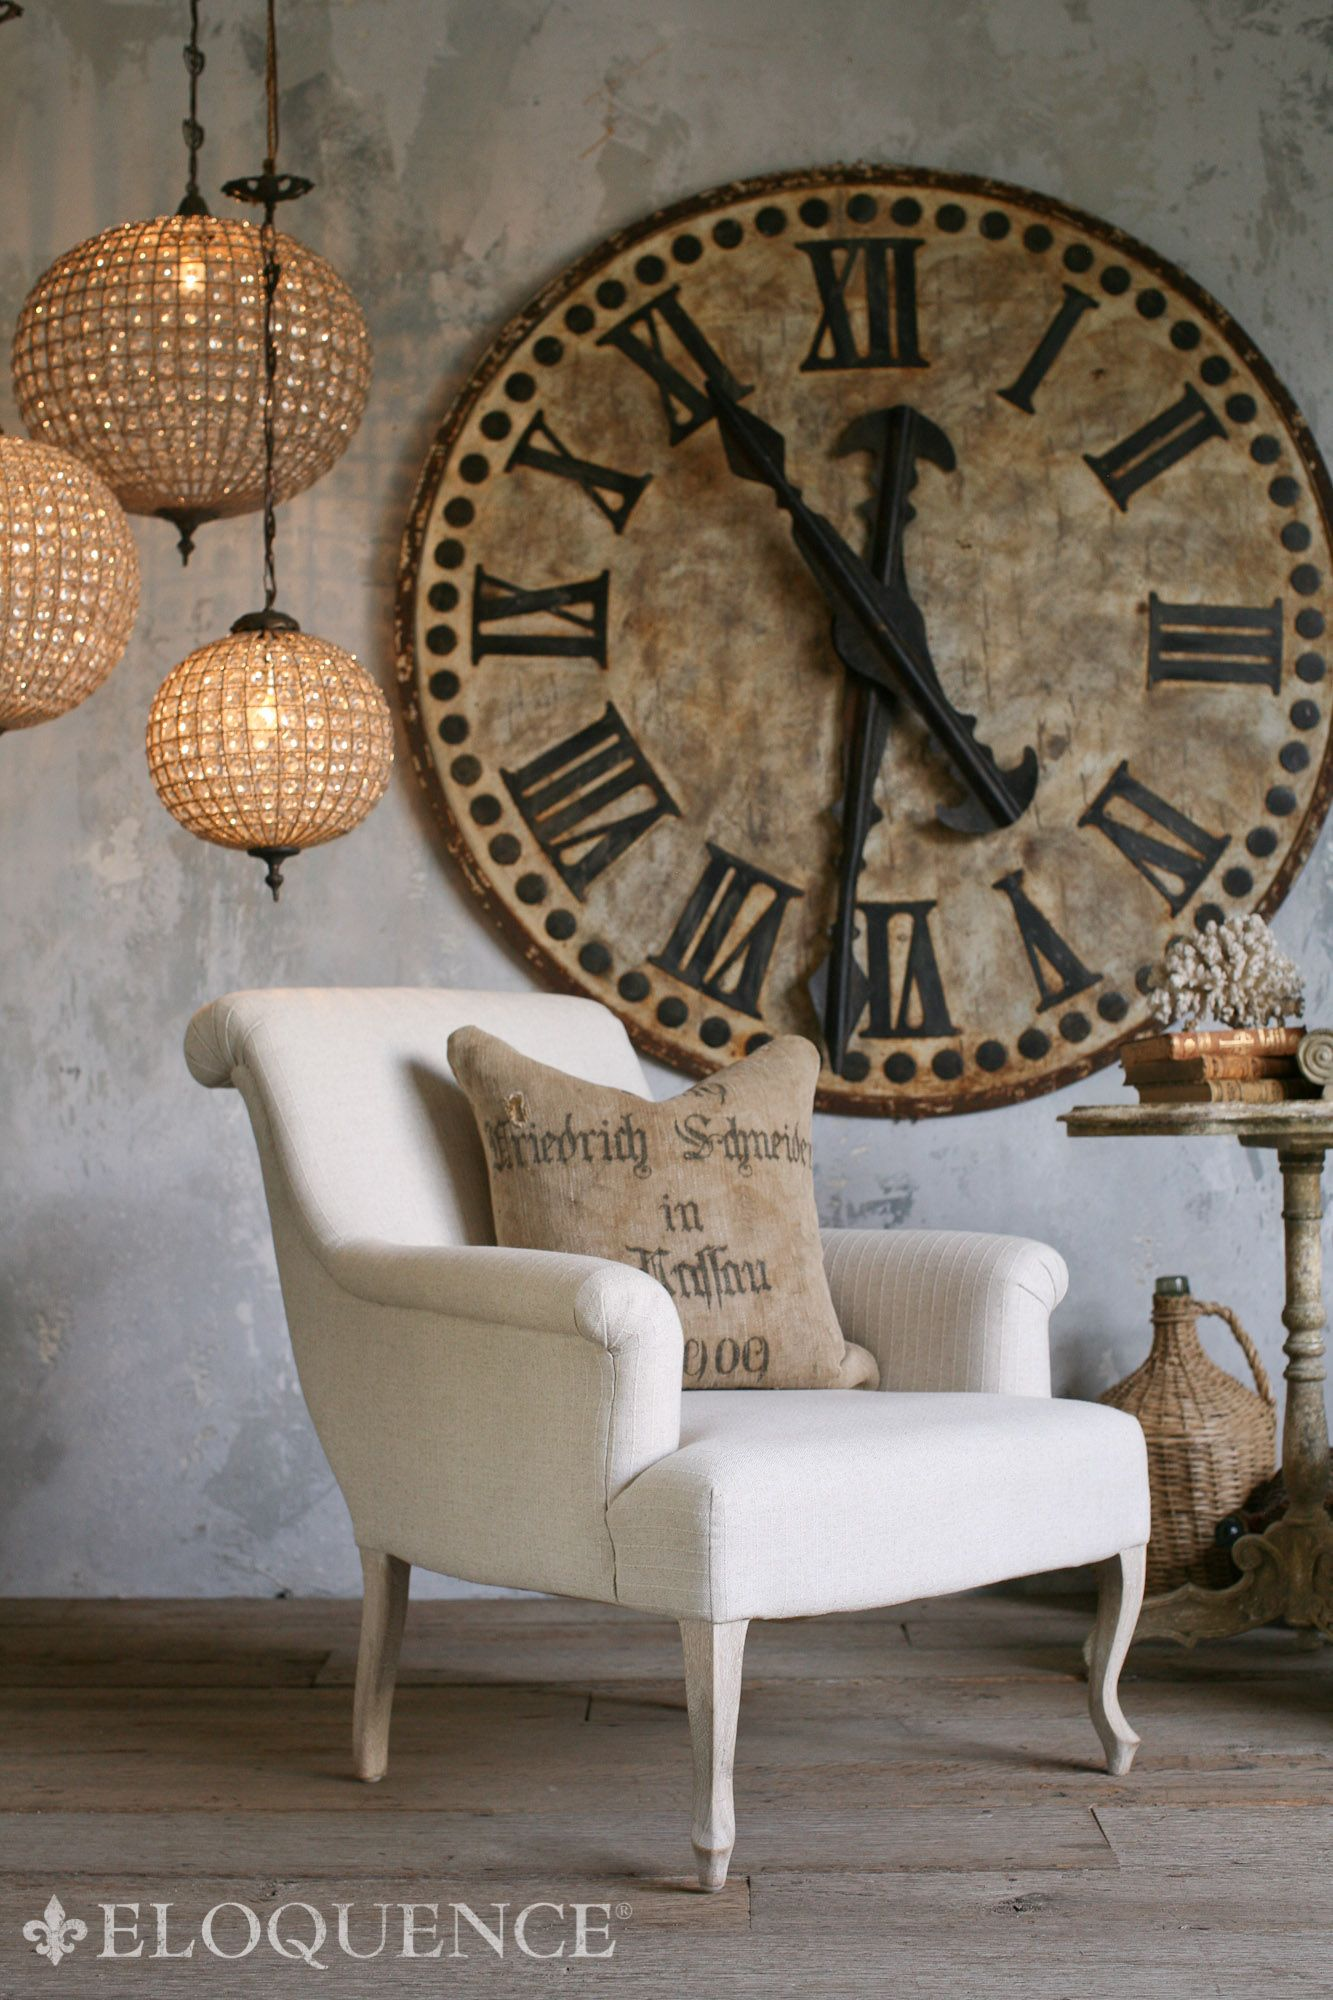 Oversize clock limewash walls burlap pillow linen chair in